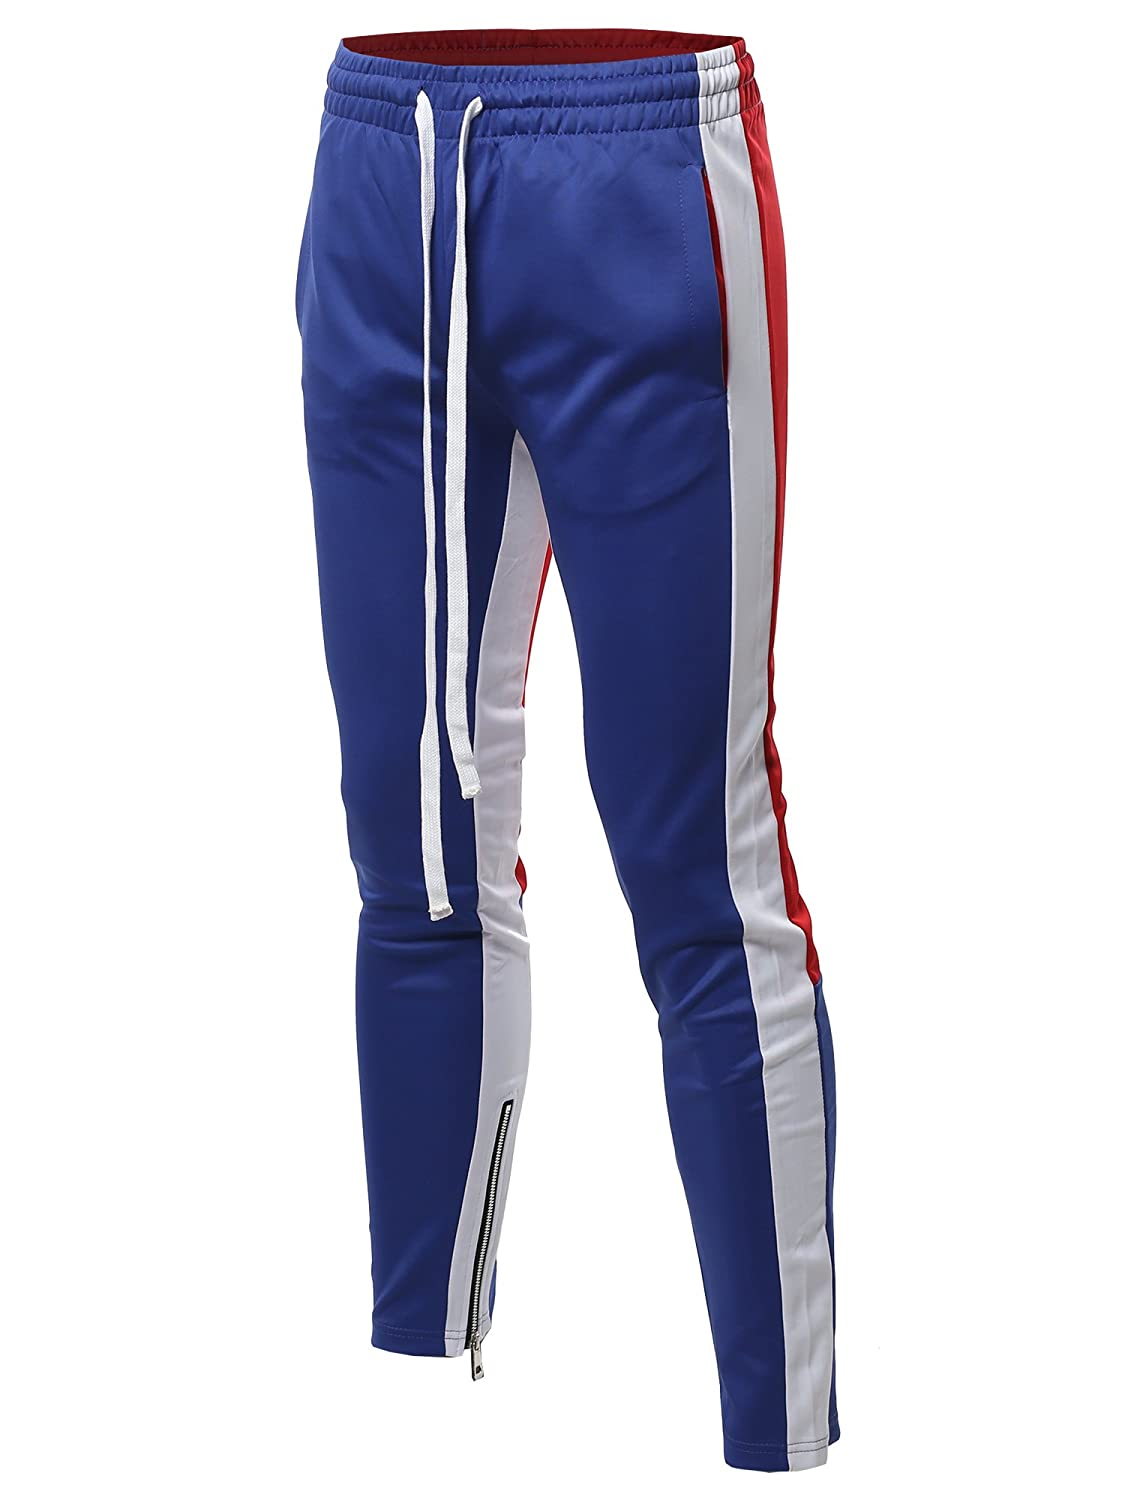 Style by William PANTS メンズ B07DRSPLY7 Large|Fsmptl0006 Royal Blue Red Fsmptl0006 Royal Blue Red Large